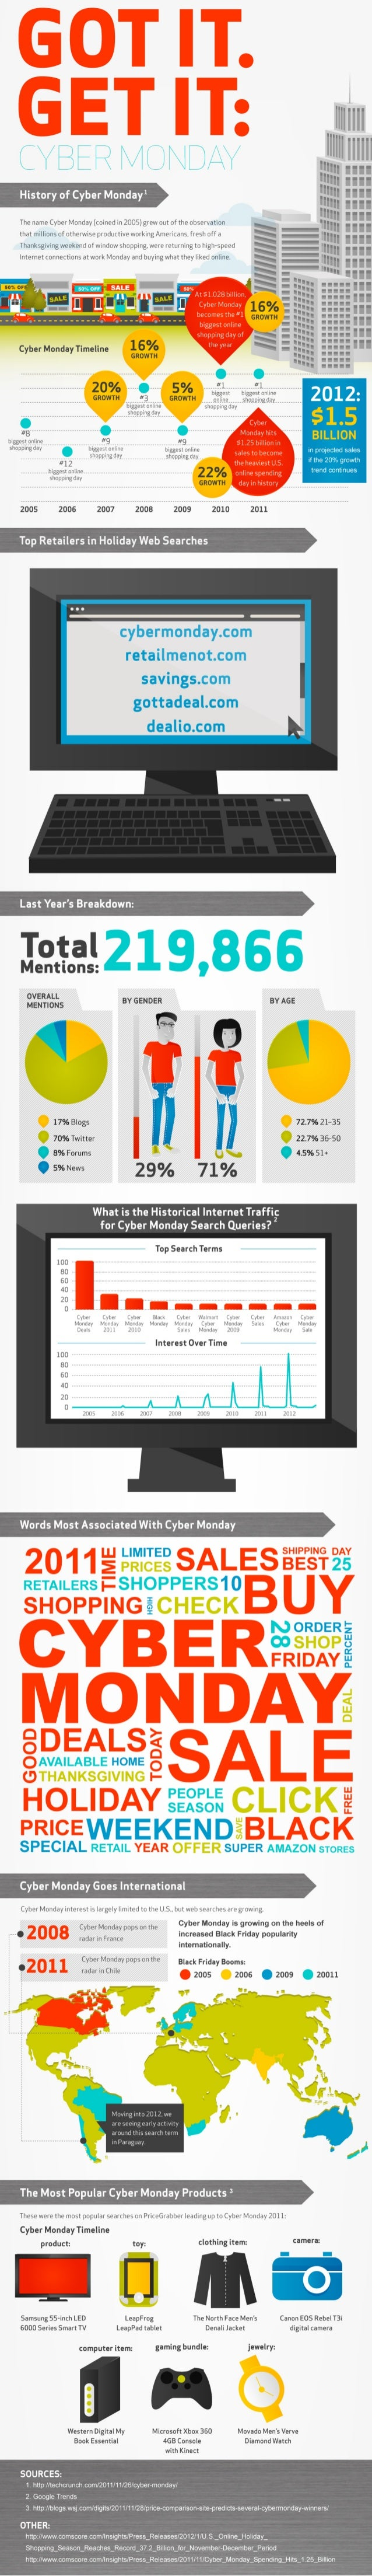 The History of Cyber Monday